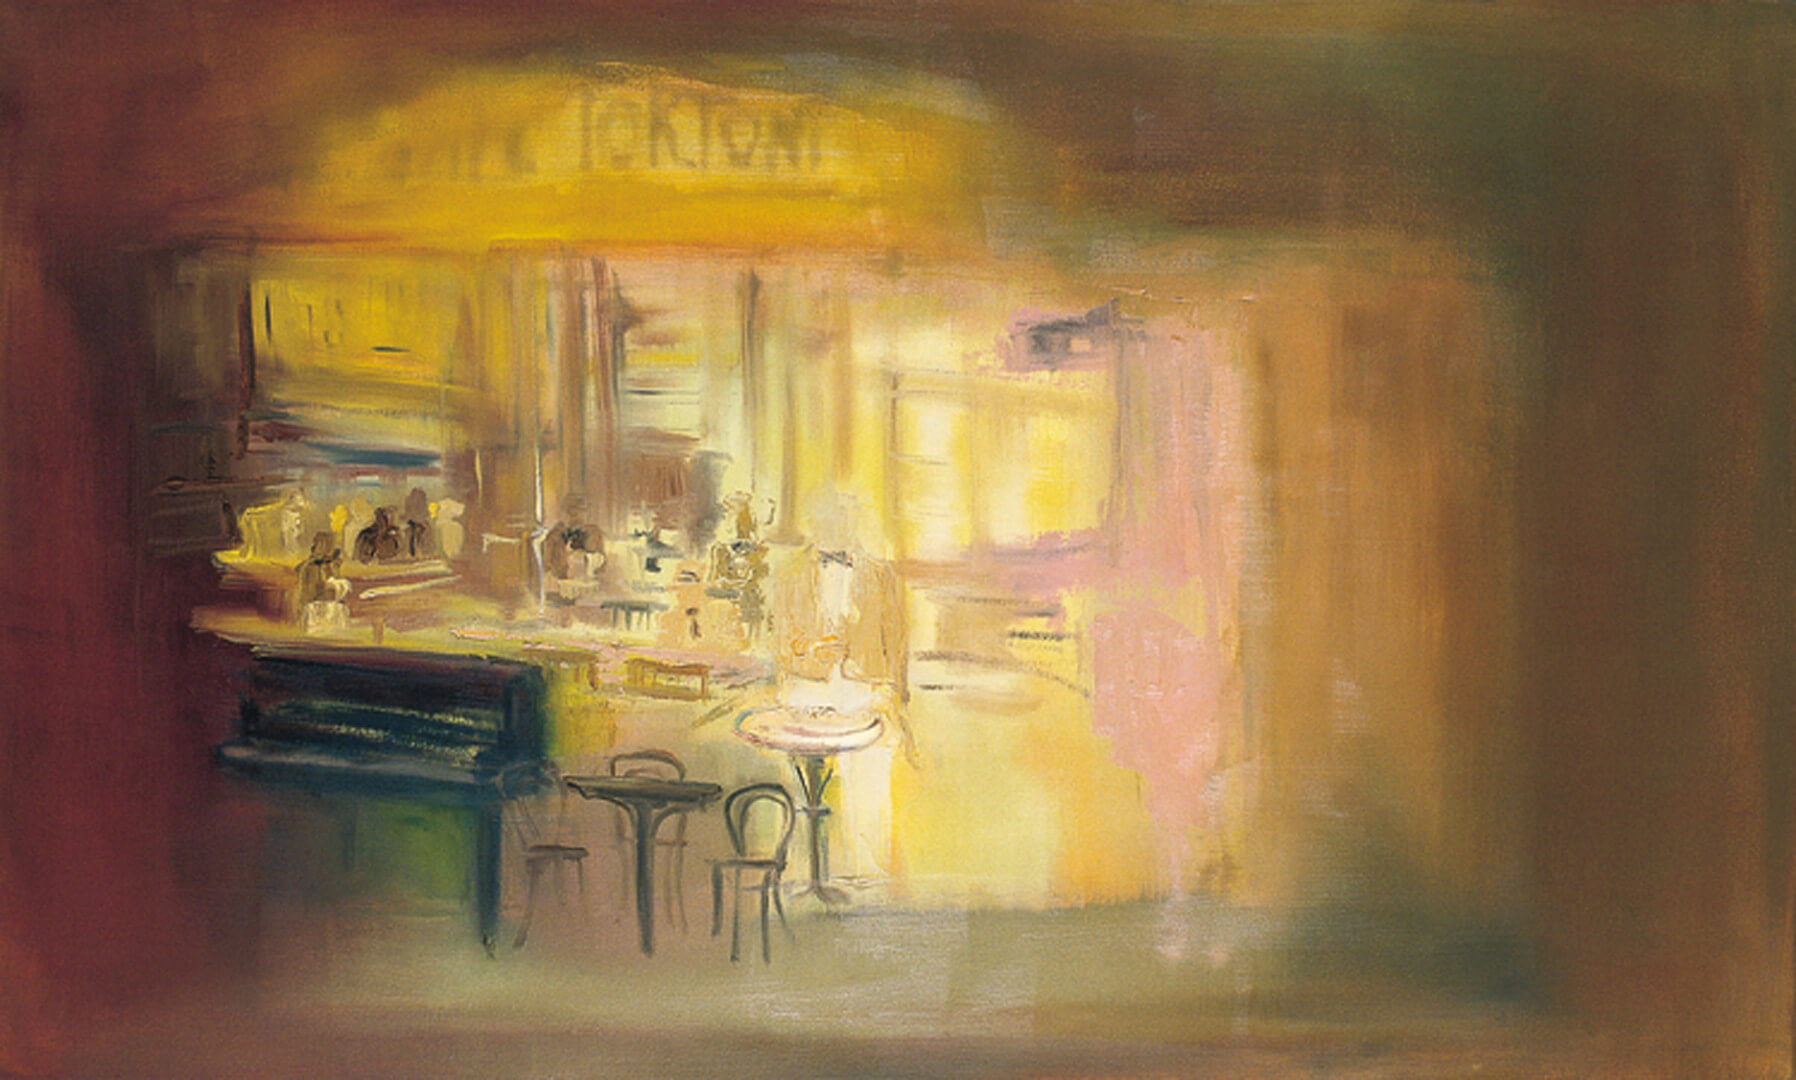 2007 - Oil on canvas. 70 cm. x 140 cm.